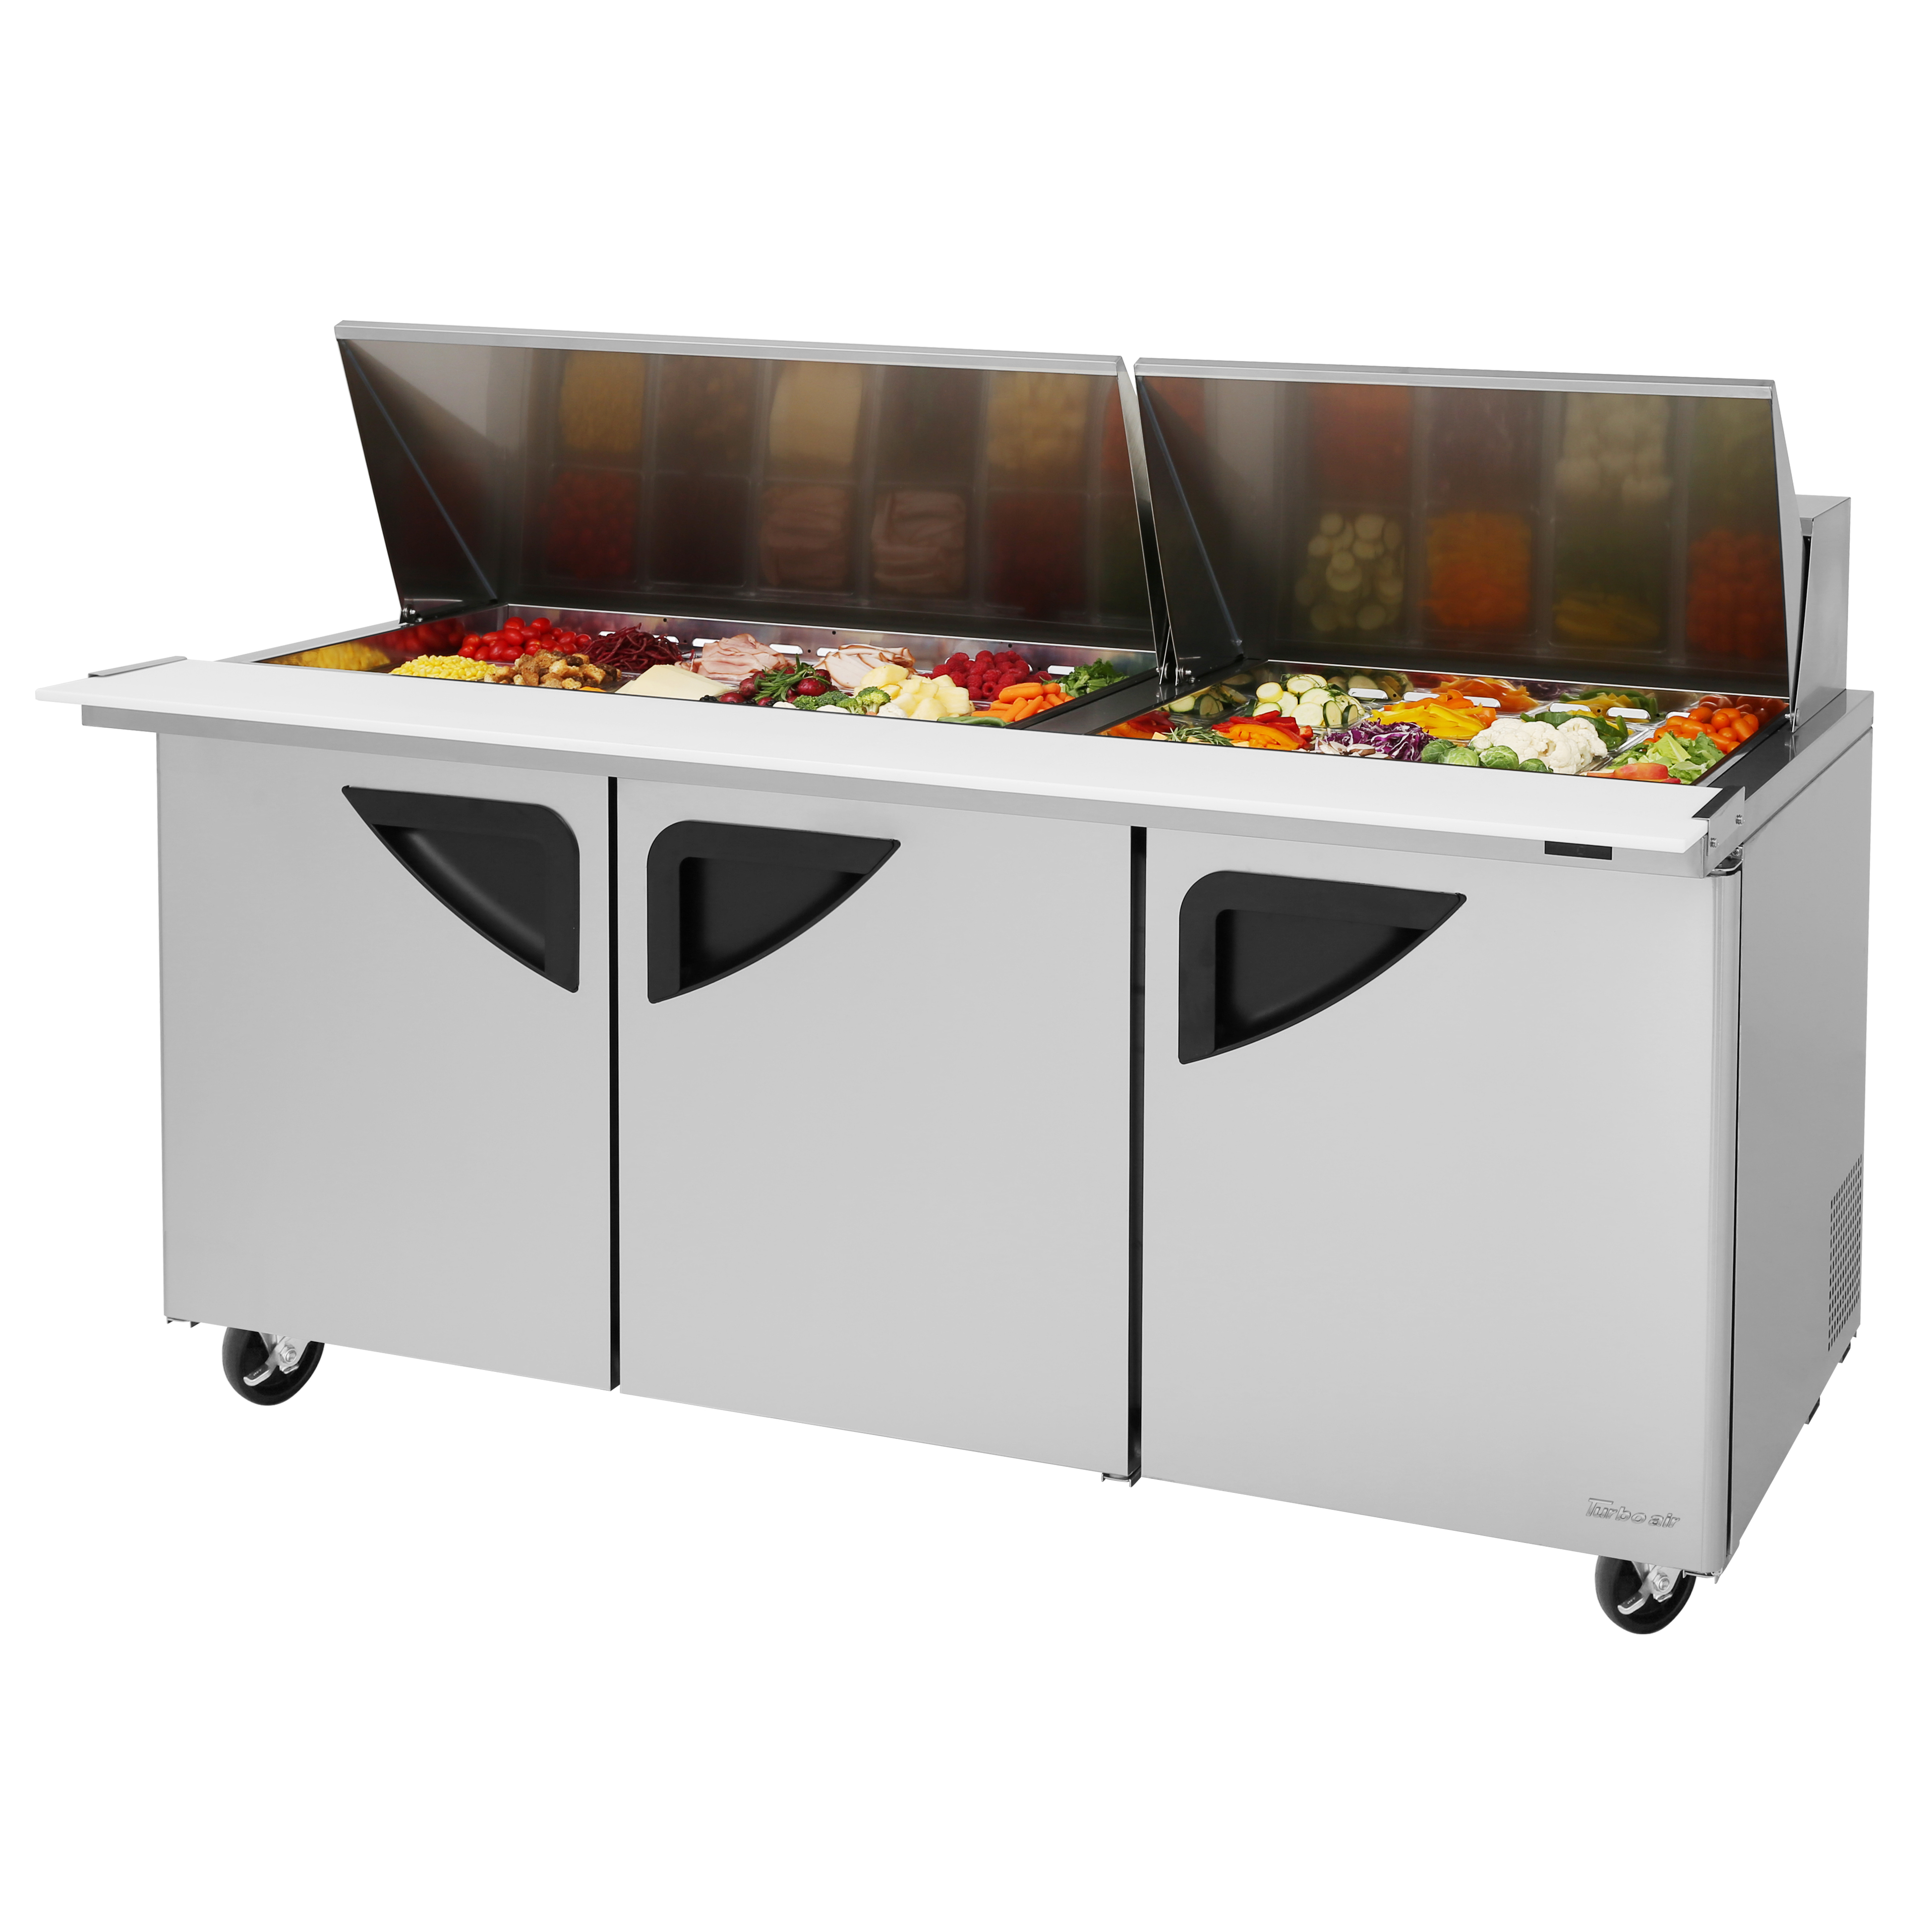 Turbo Air TST-72SD-30-N refrigerated counter, mega top sandwich / salad unit